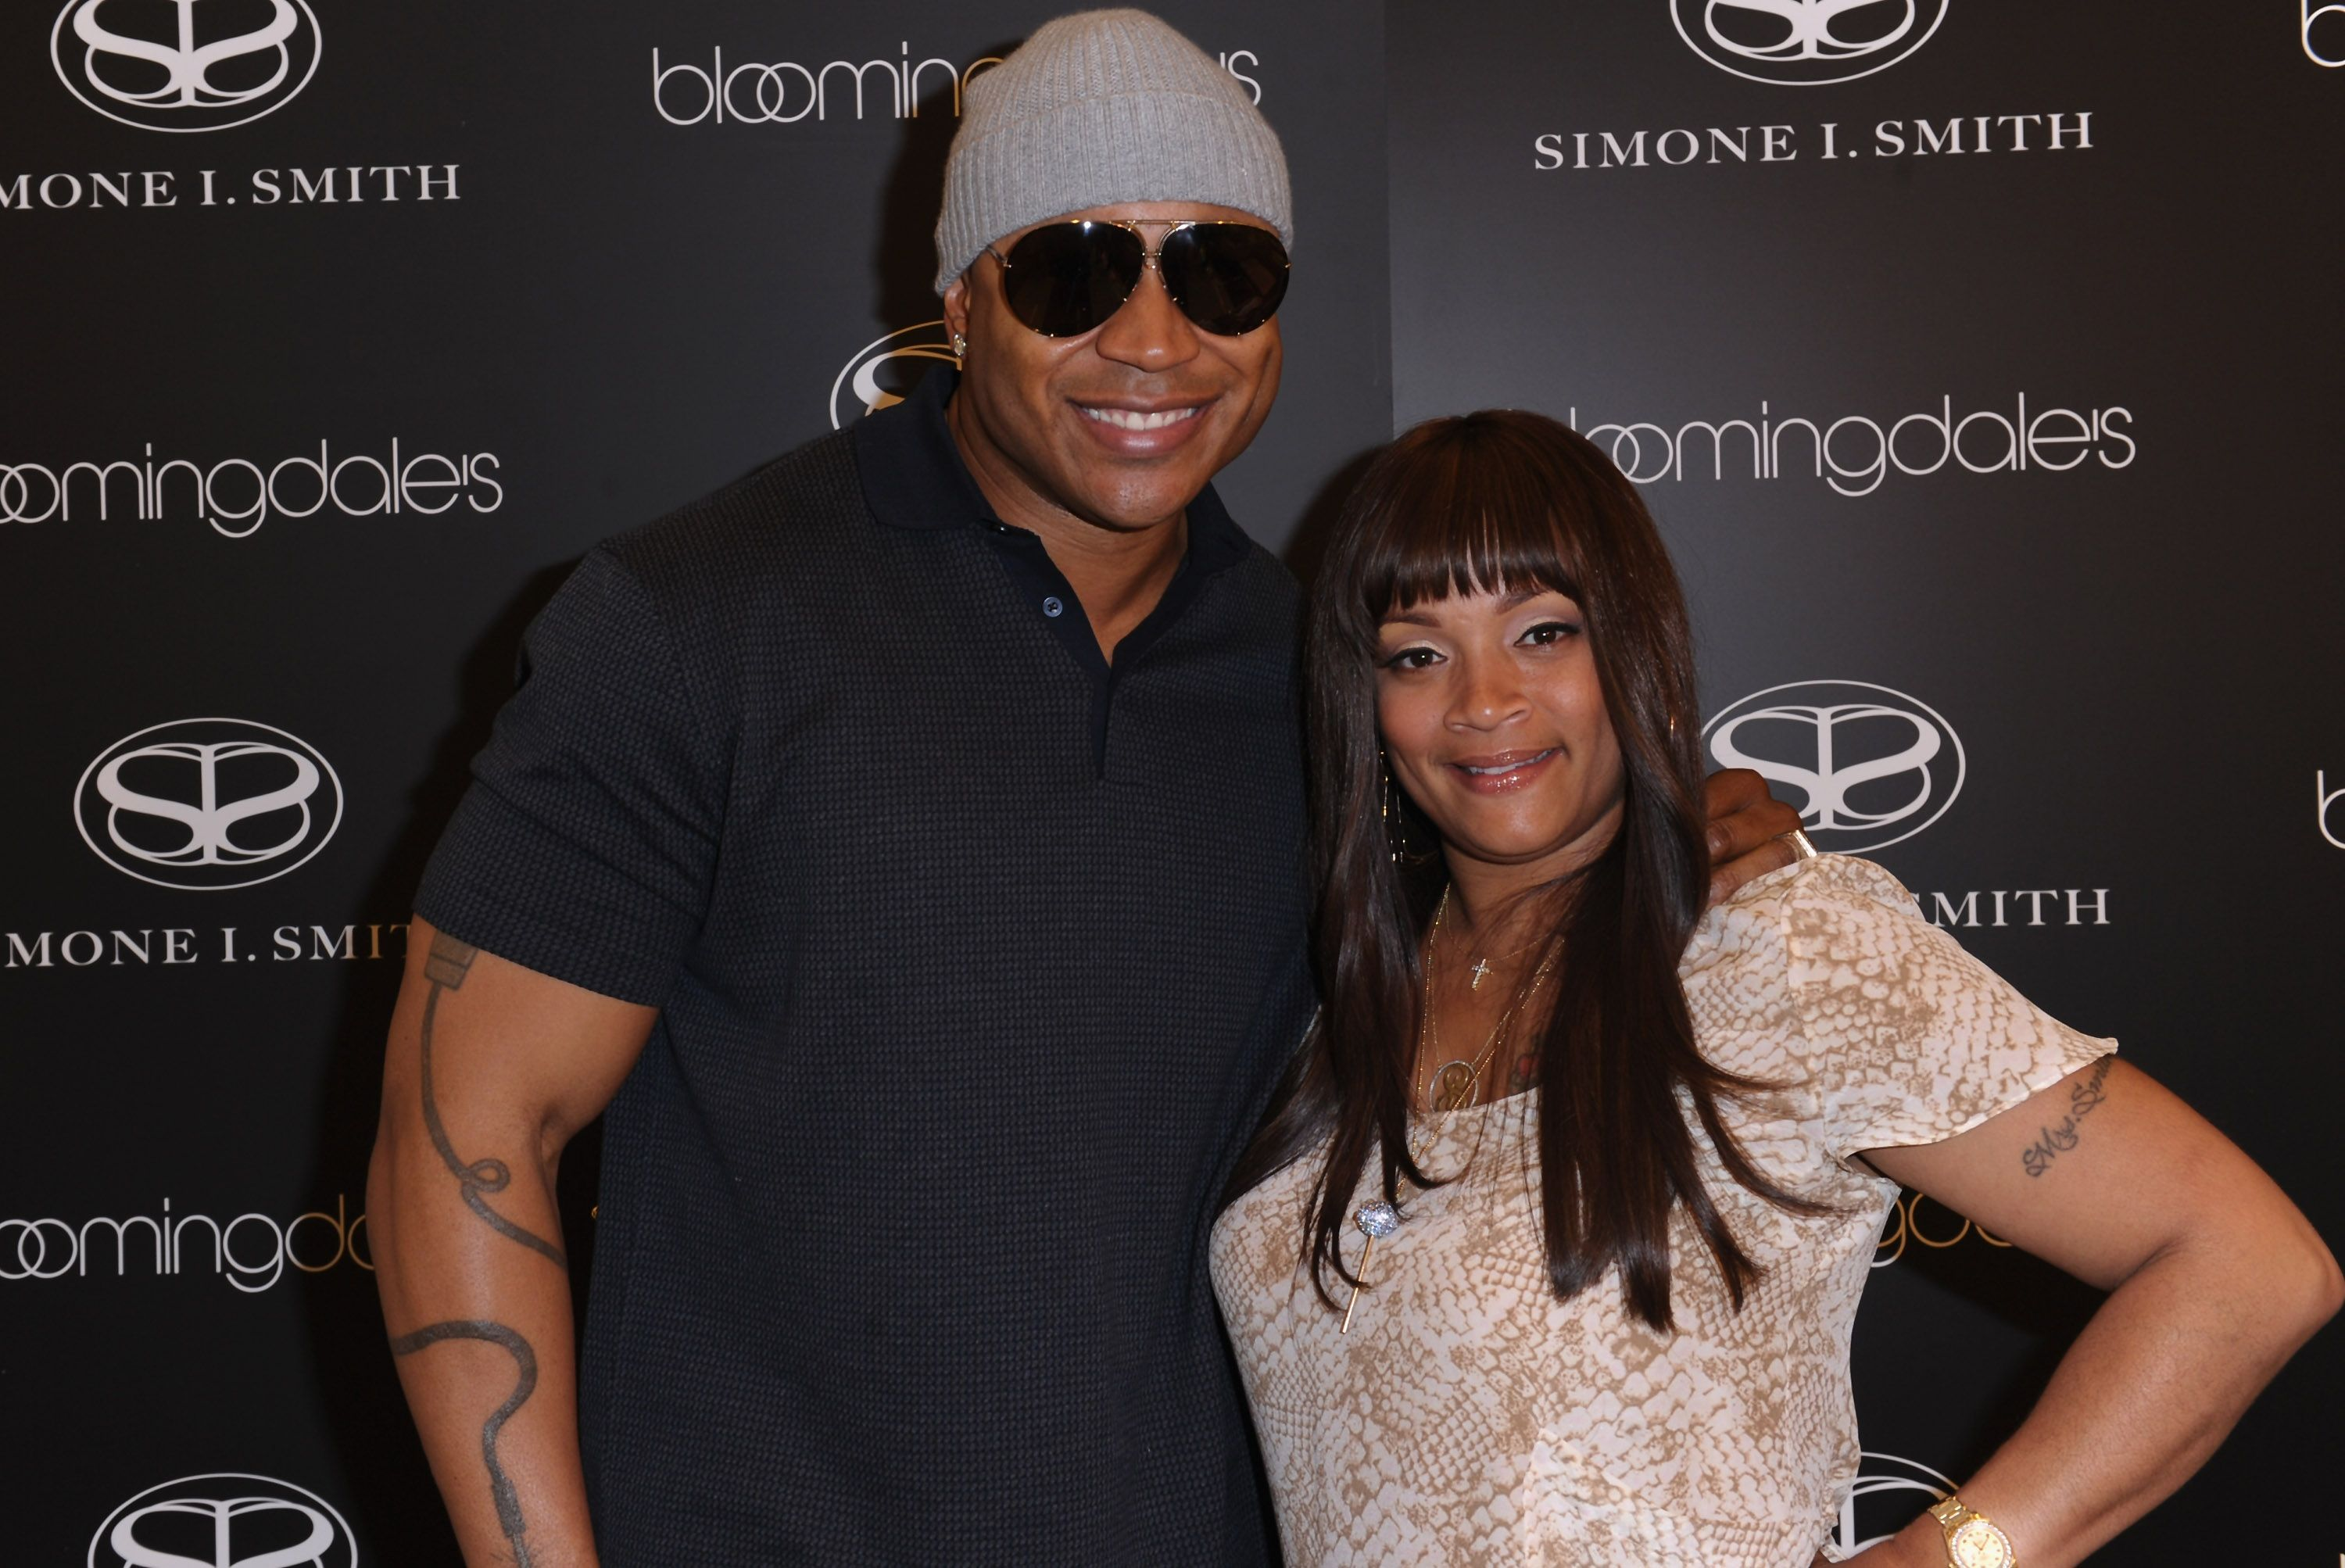 Actor LL Cool J joins his wife Simone I. Smith for her personal appearance at Bloomingdale's on May 12, 2011 | Photo: Getty Images